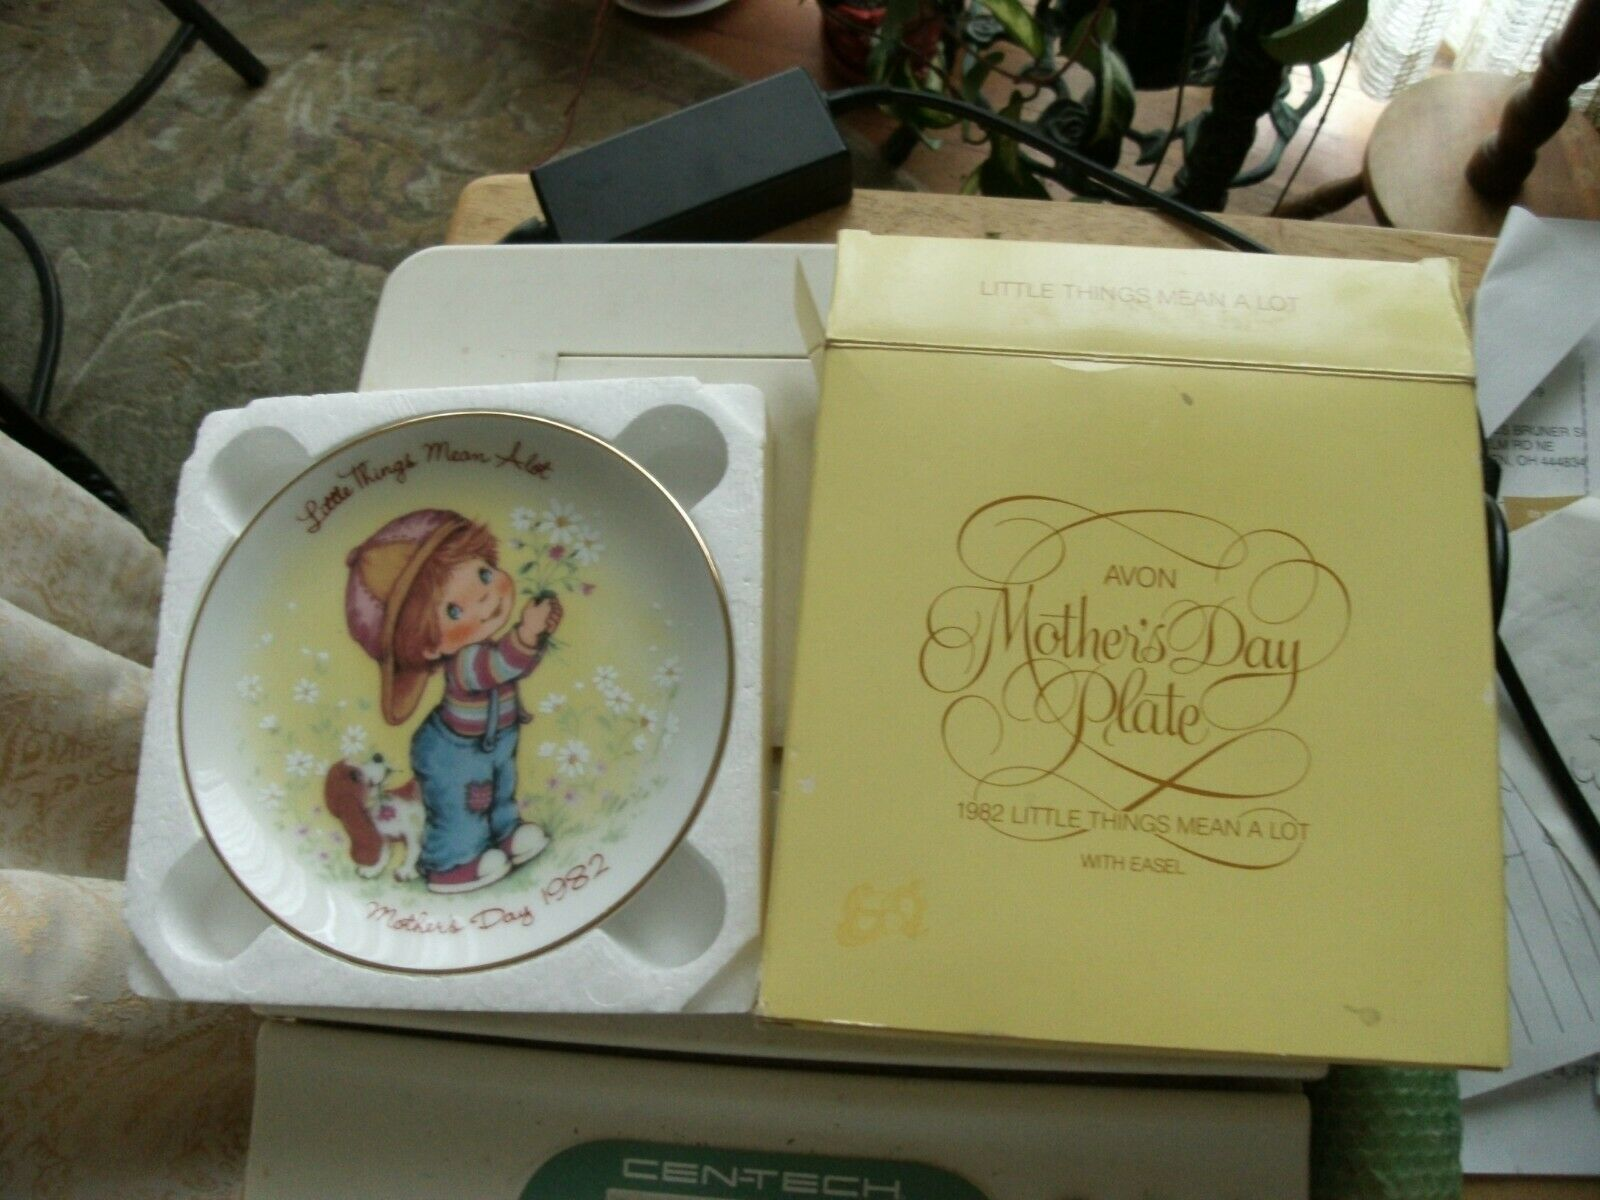 16#B   Vintage Avon Little Things Mean A Lot  Mothers Day Plate 1982